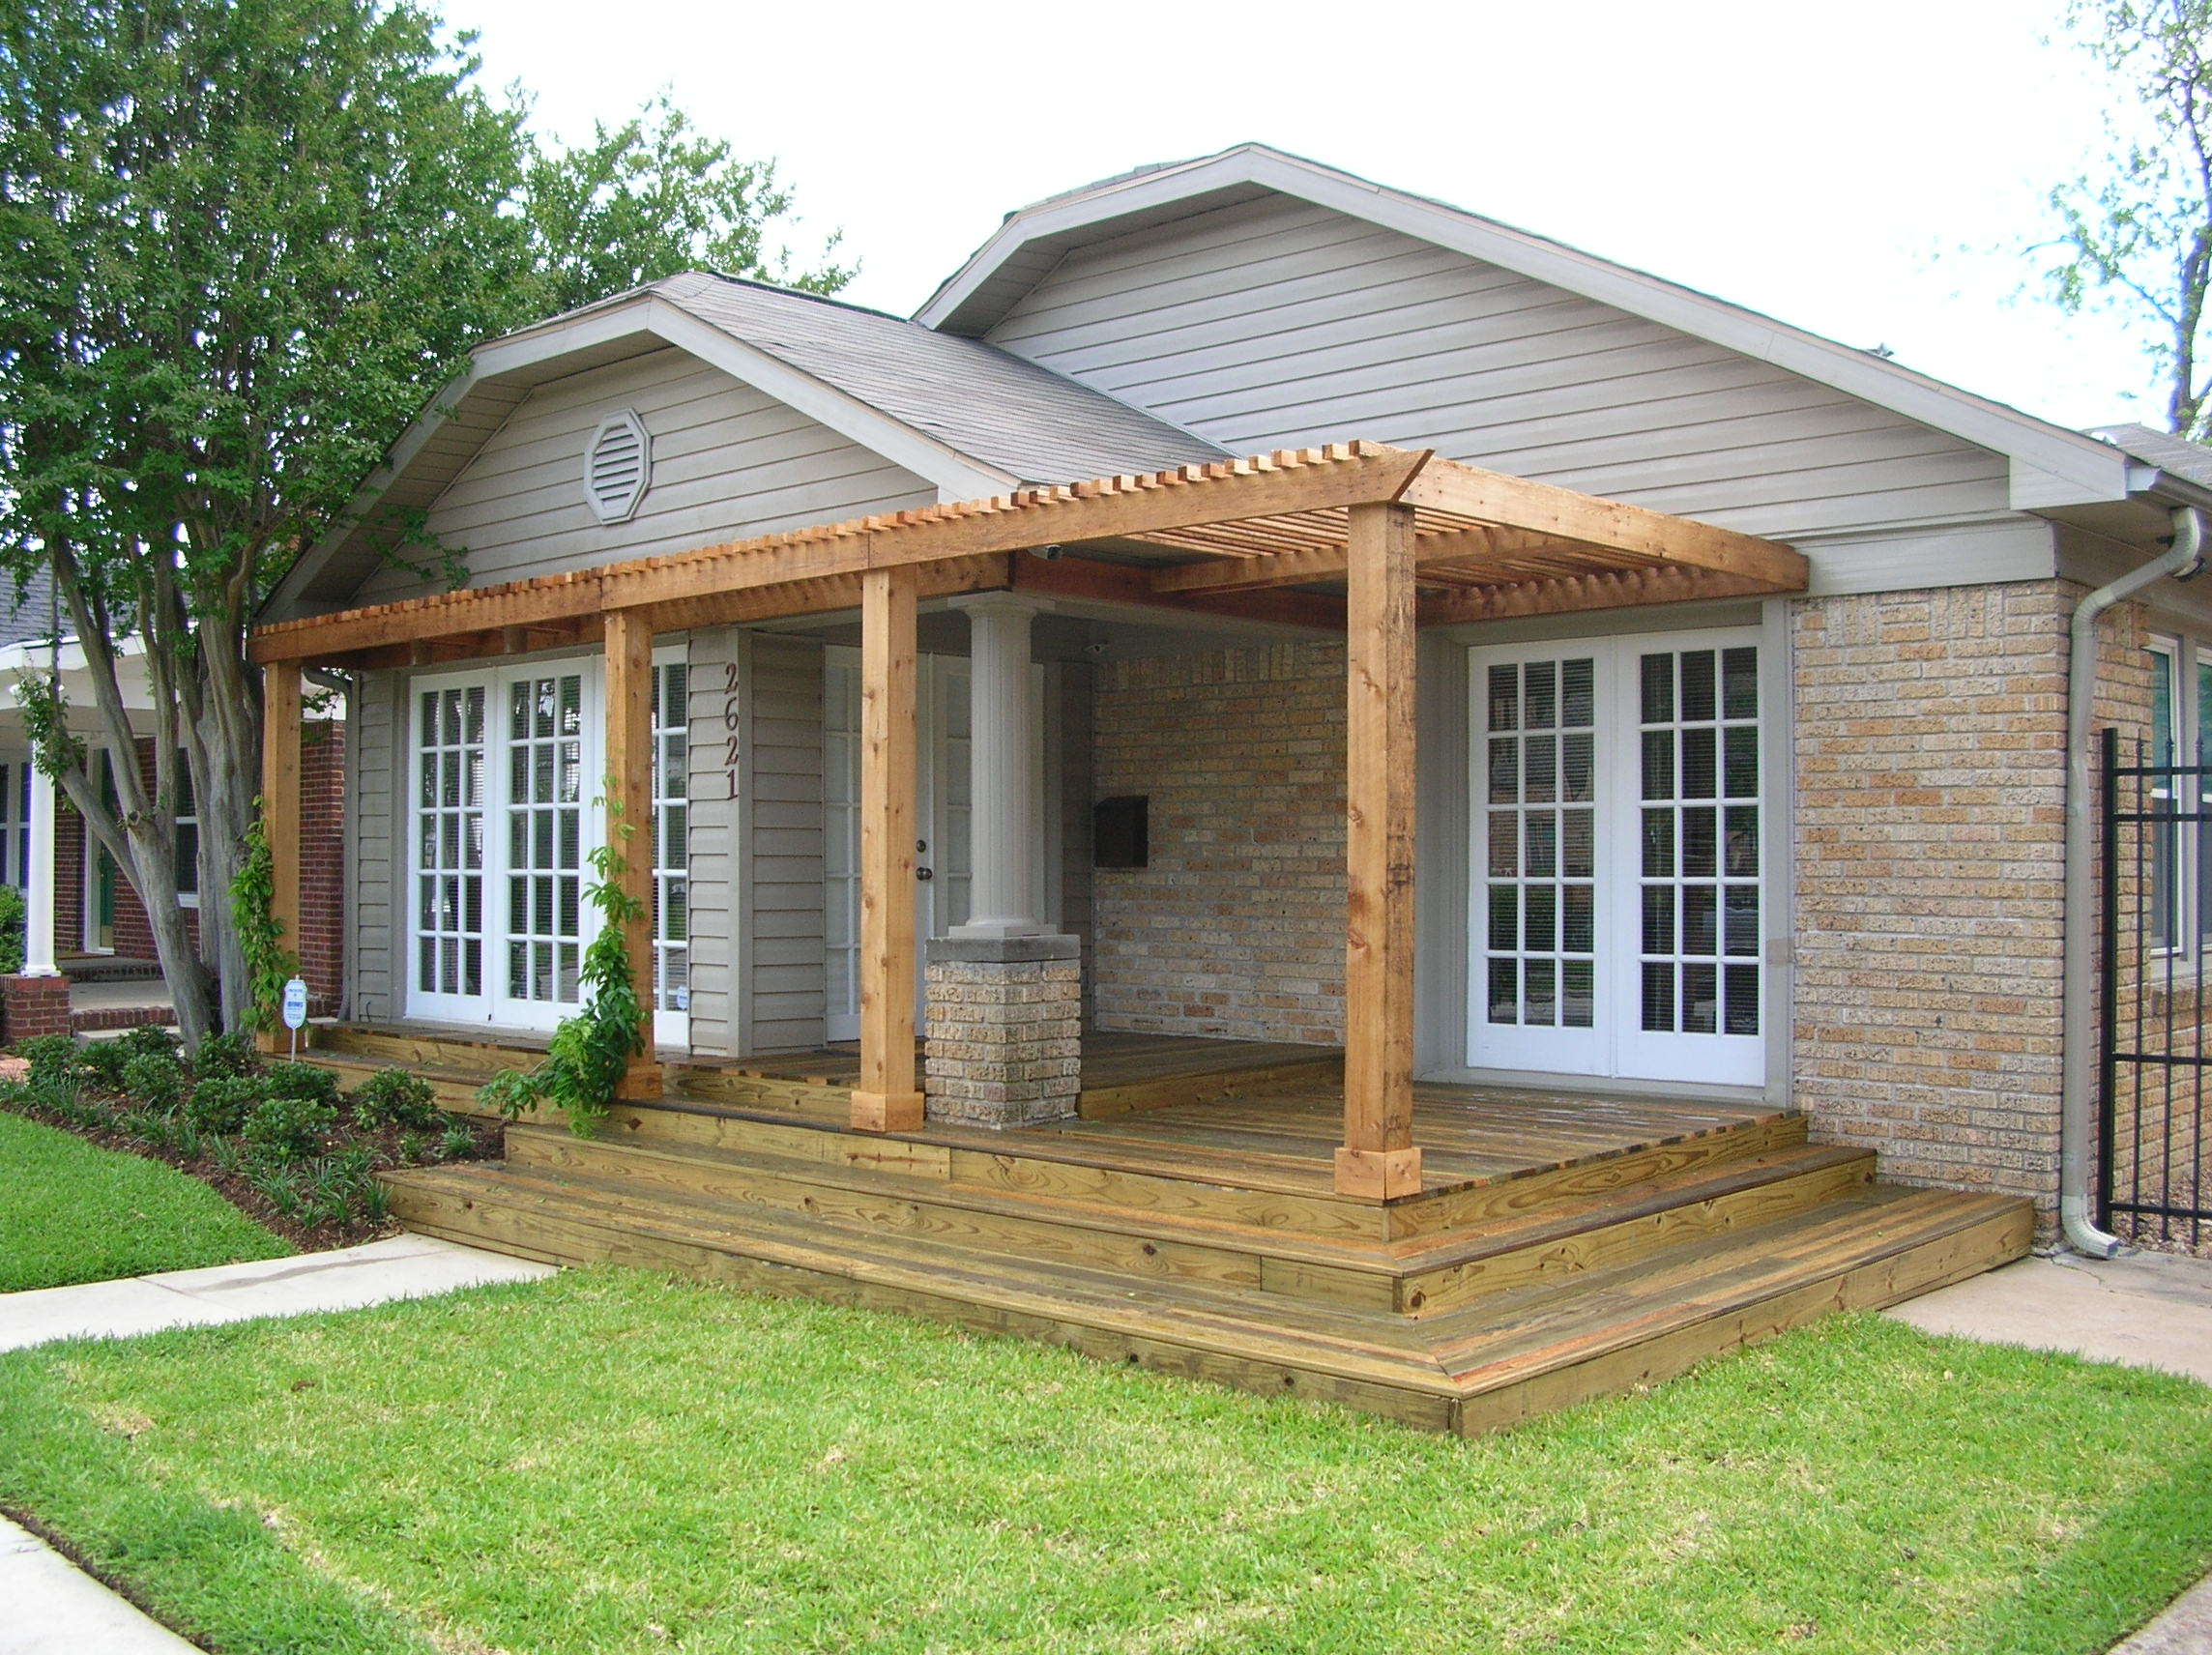 Deck designs deck designs with pergola Deck design ideas